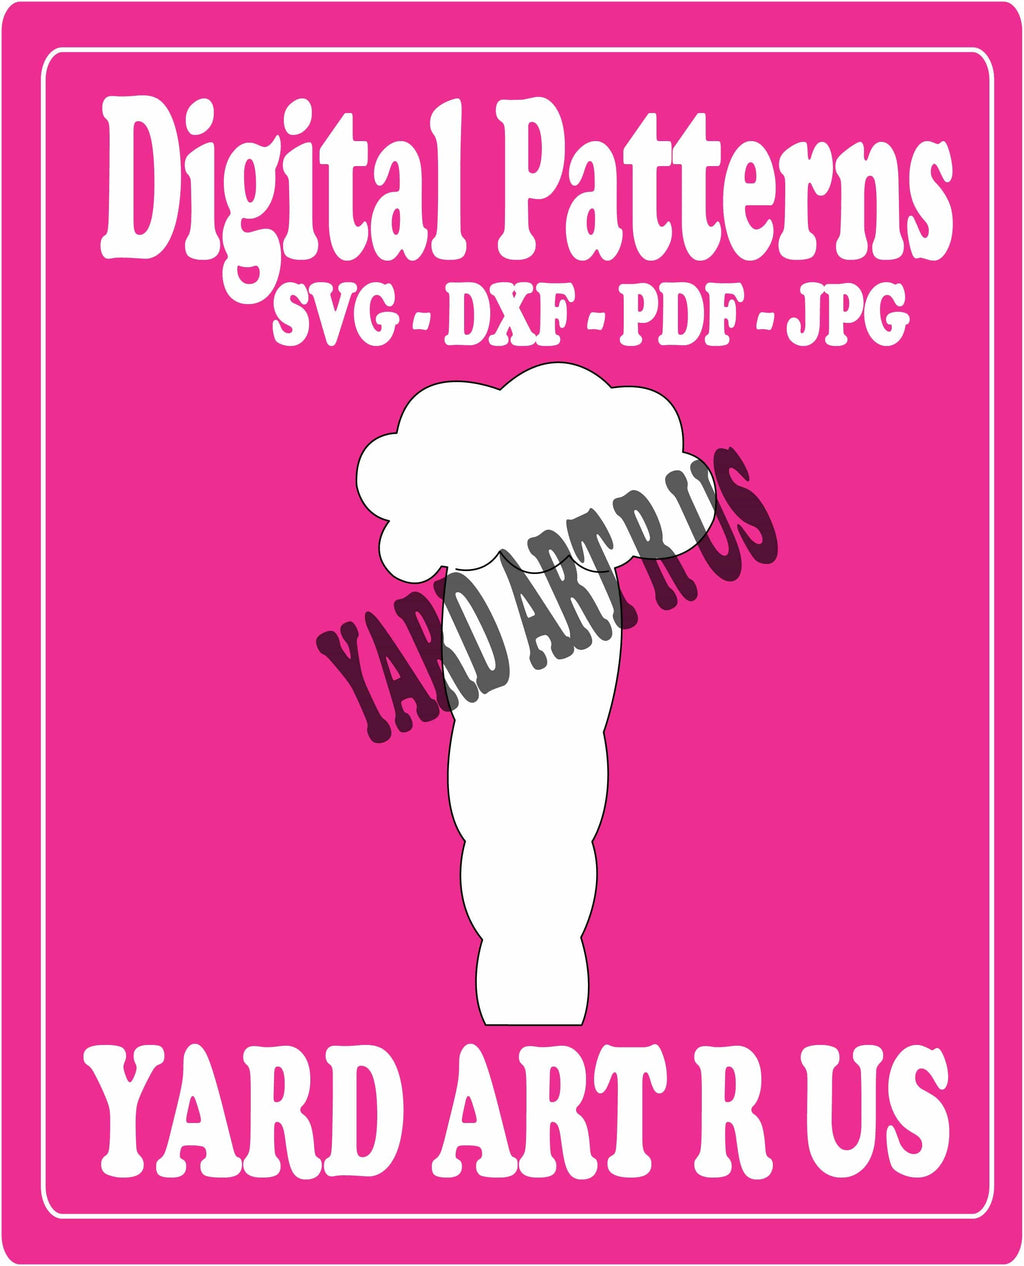 carrot digital pattern - SVG, DXF, PDF, and JPG file options